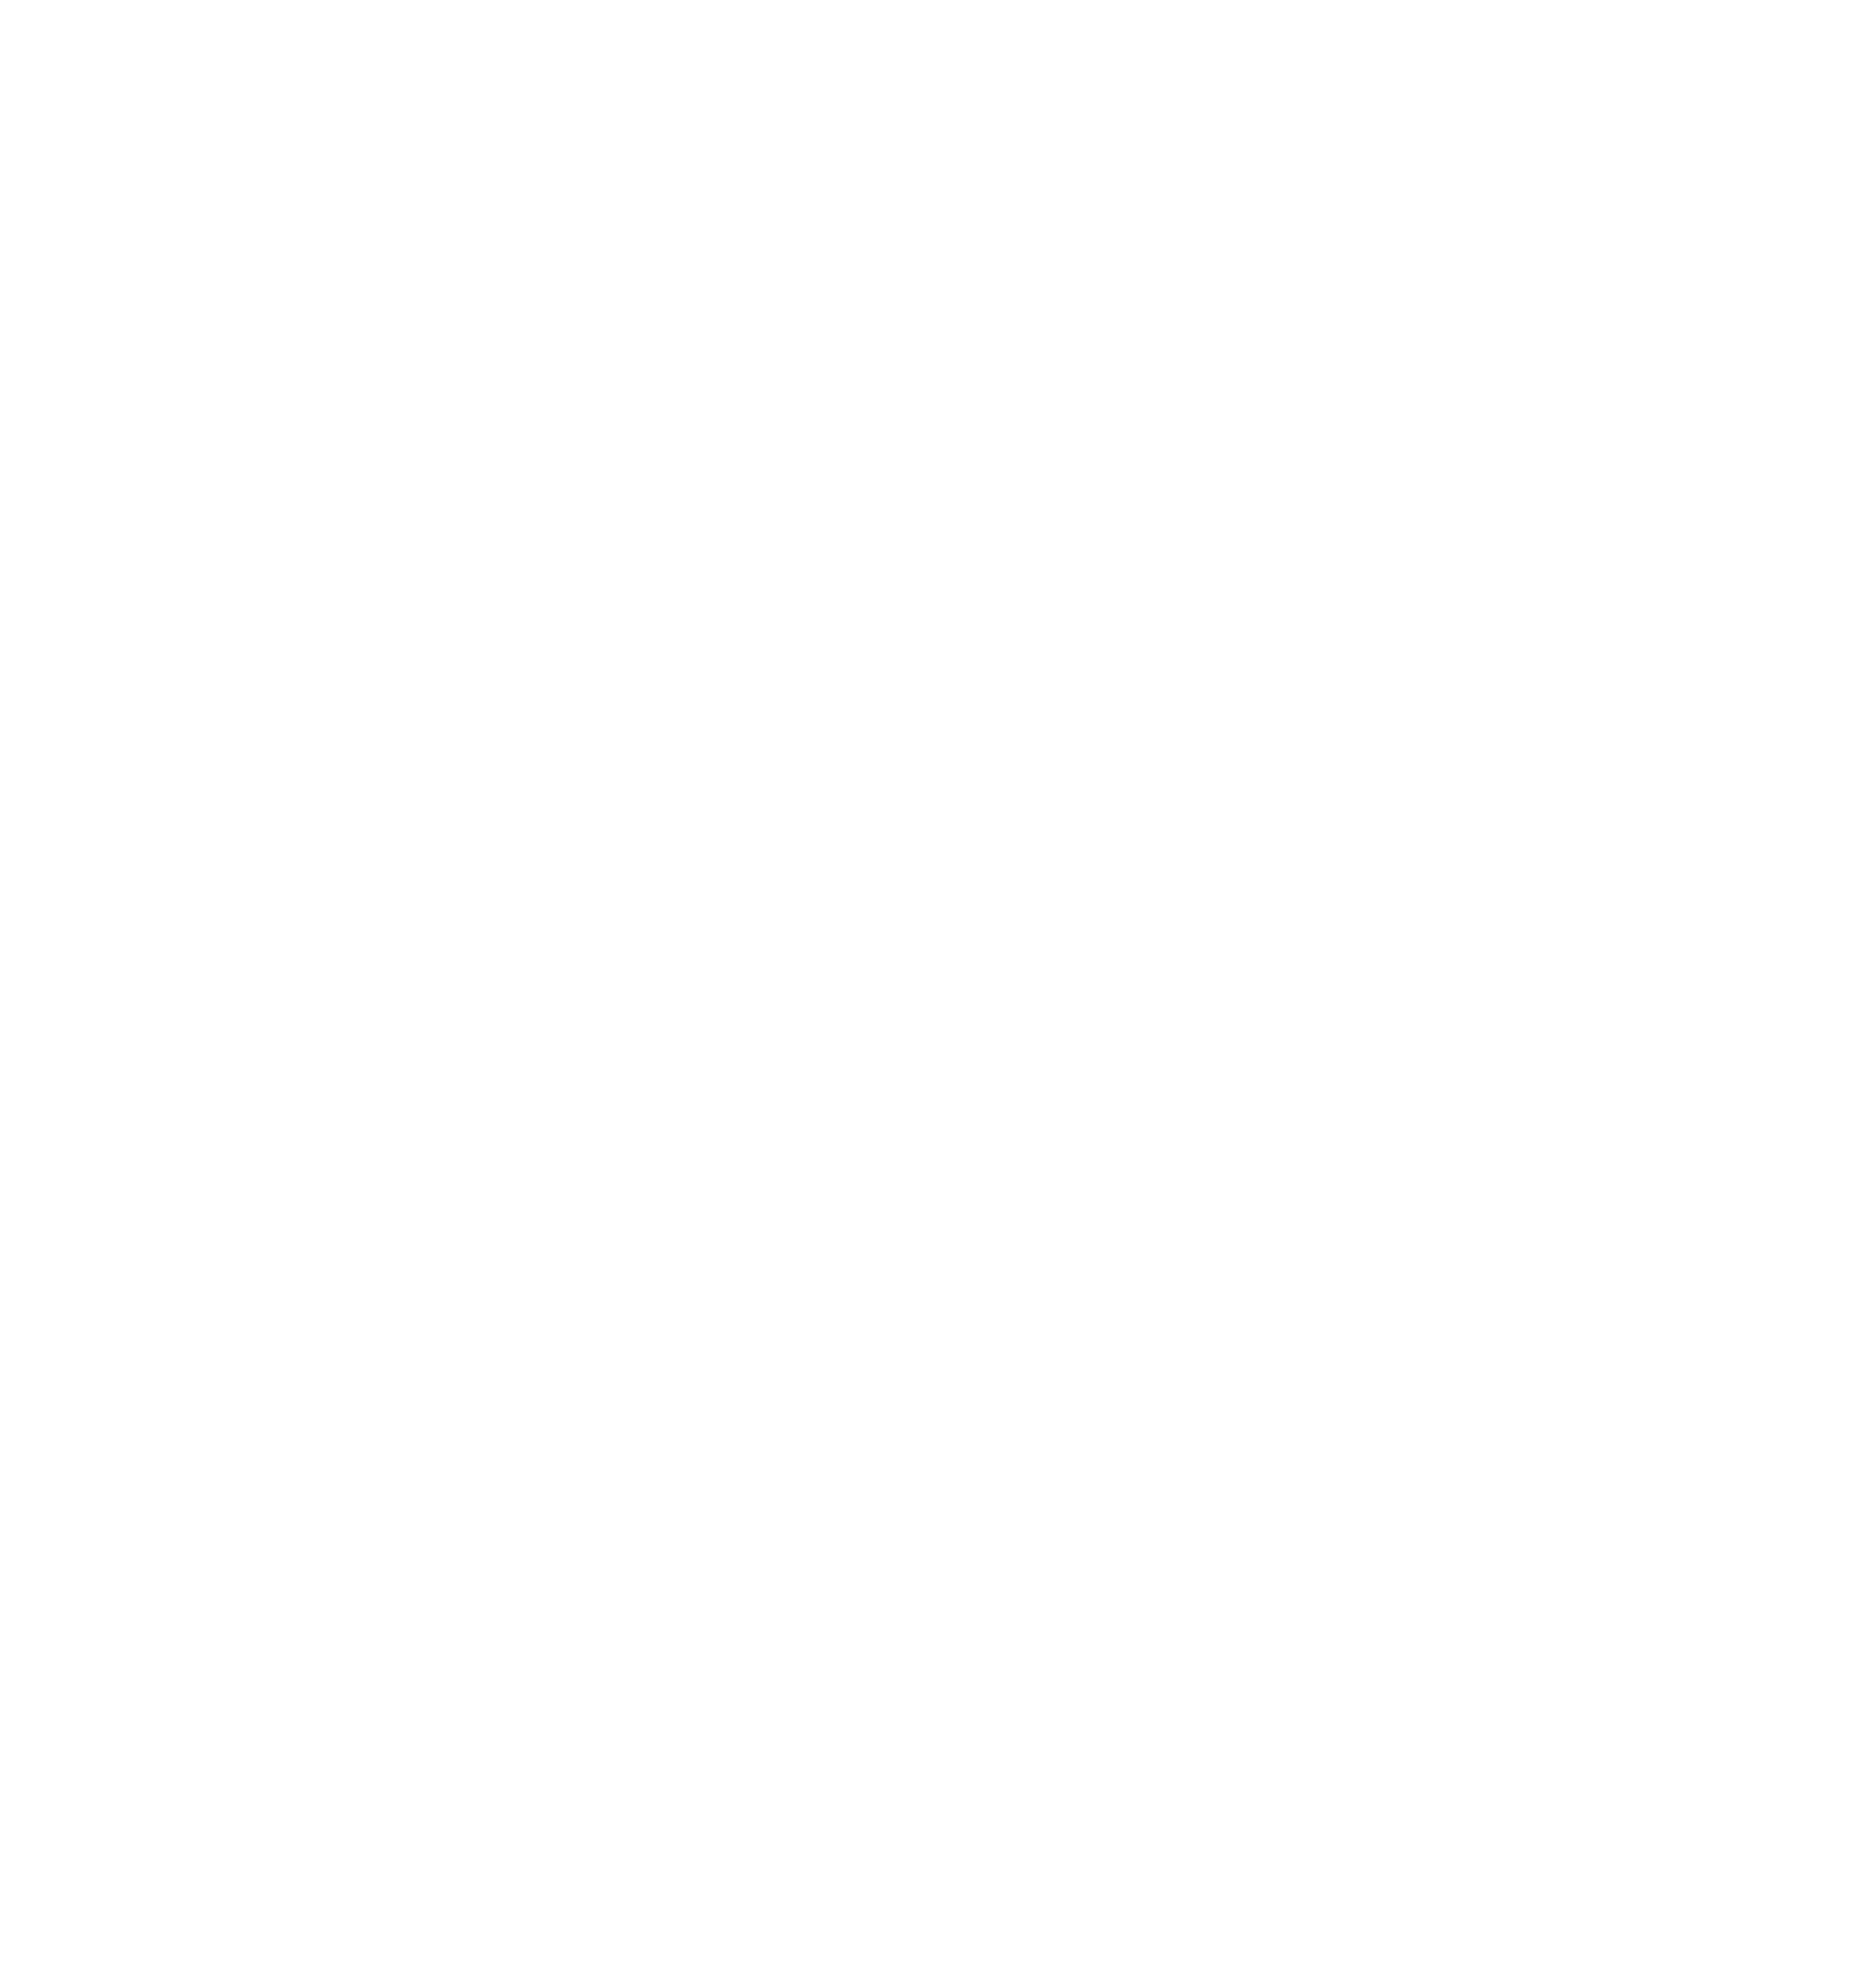 Bona part dels reptes que té actualment plantejats l'educació al nostre país no són pas nous. Però adquireixen una rellevància especial en el moment actual; el context social i econòmic possibilita pensar en apostes educatives de més calat i ambició del que ho han vingut sent els darrers anys.